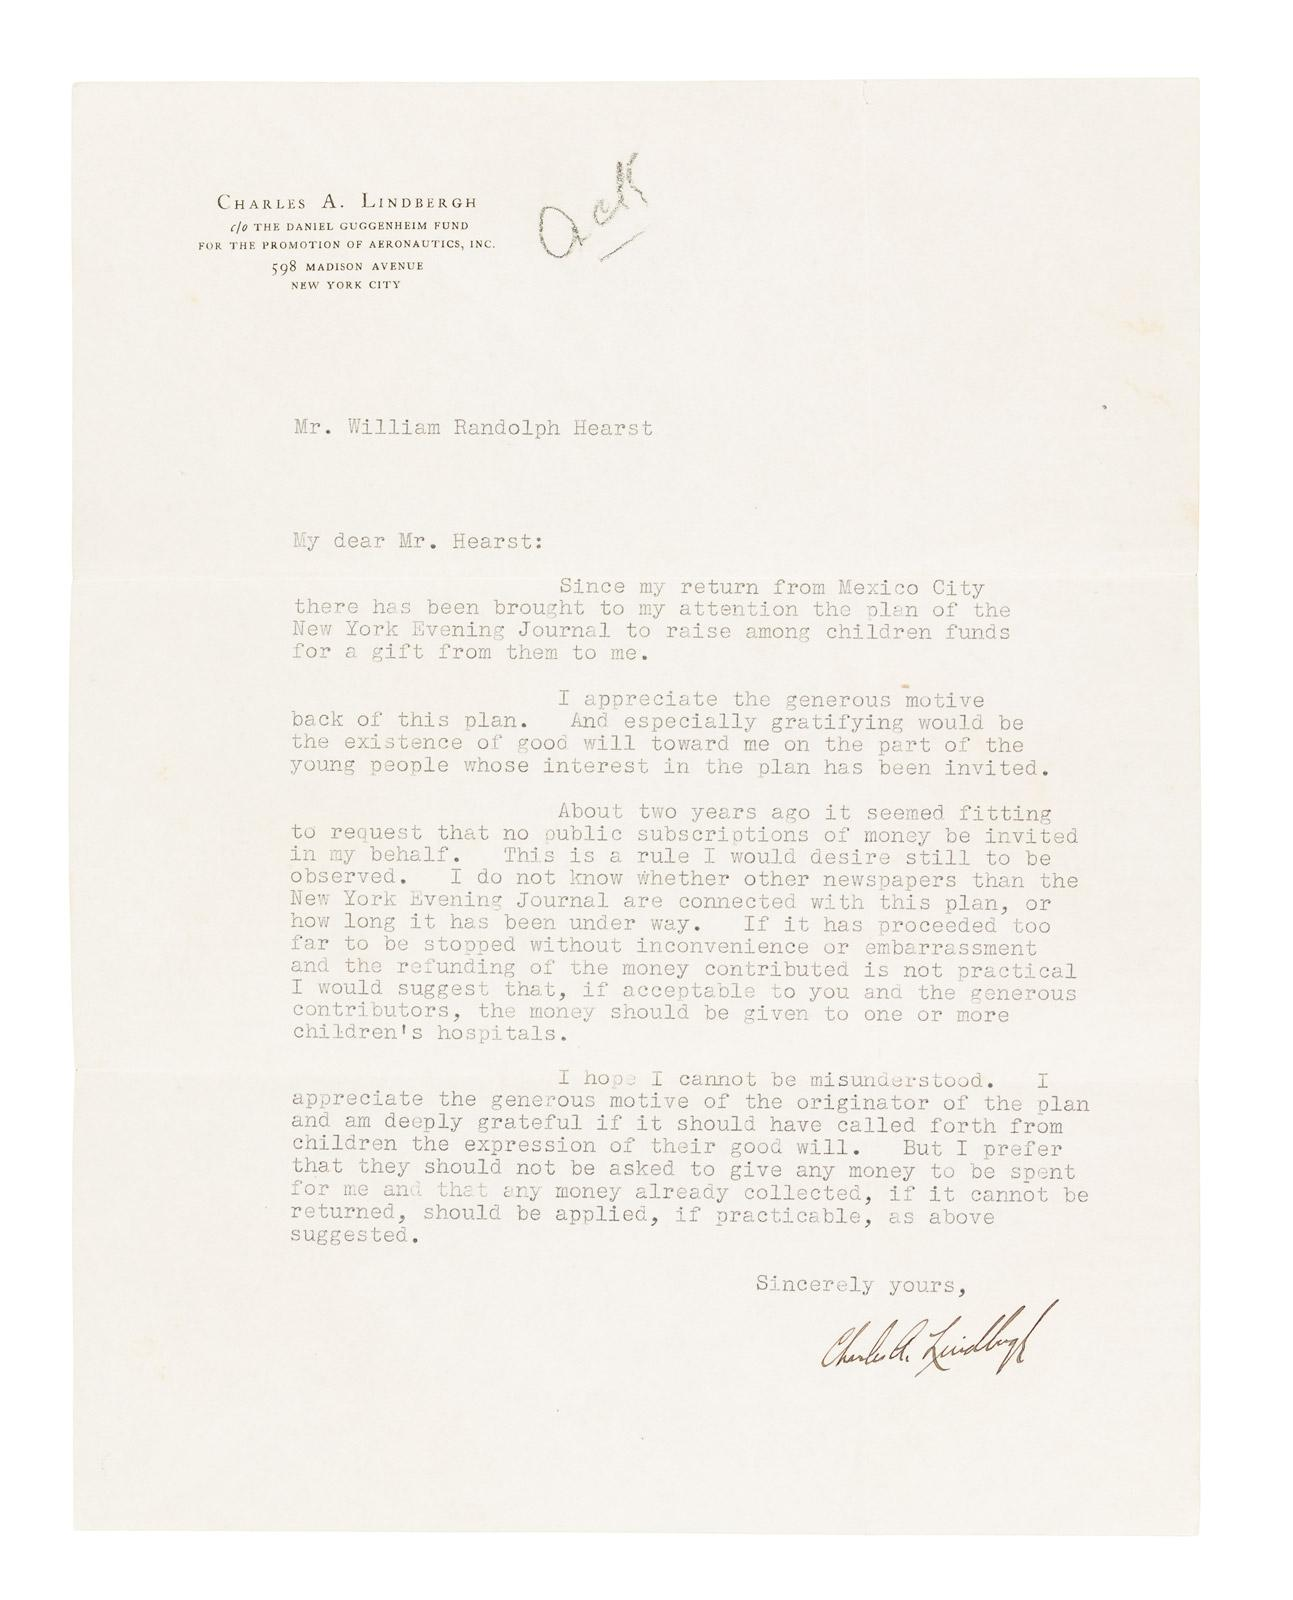 Letter from charles lindbergh to william randolph hearst requesting letter from charles lindbergh to william randolph hearst requesting that he curtail efforts to raise money from children for a gift to lindbergh price spiritdancerdesigns Choice Image